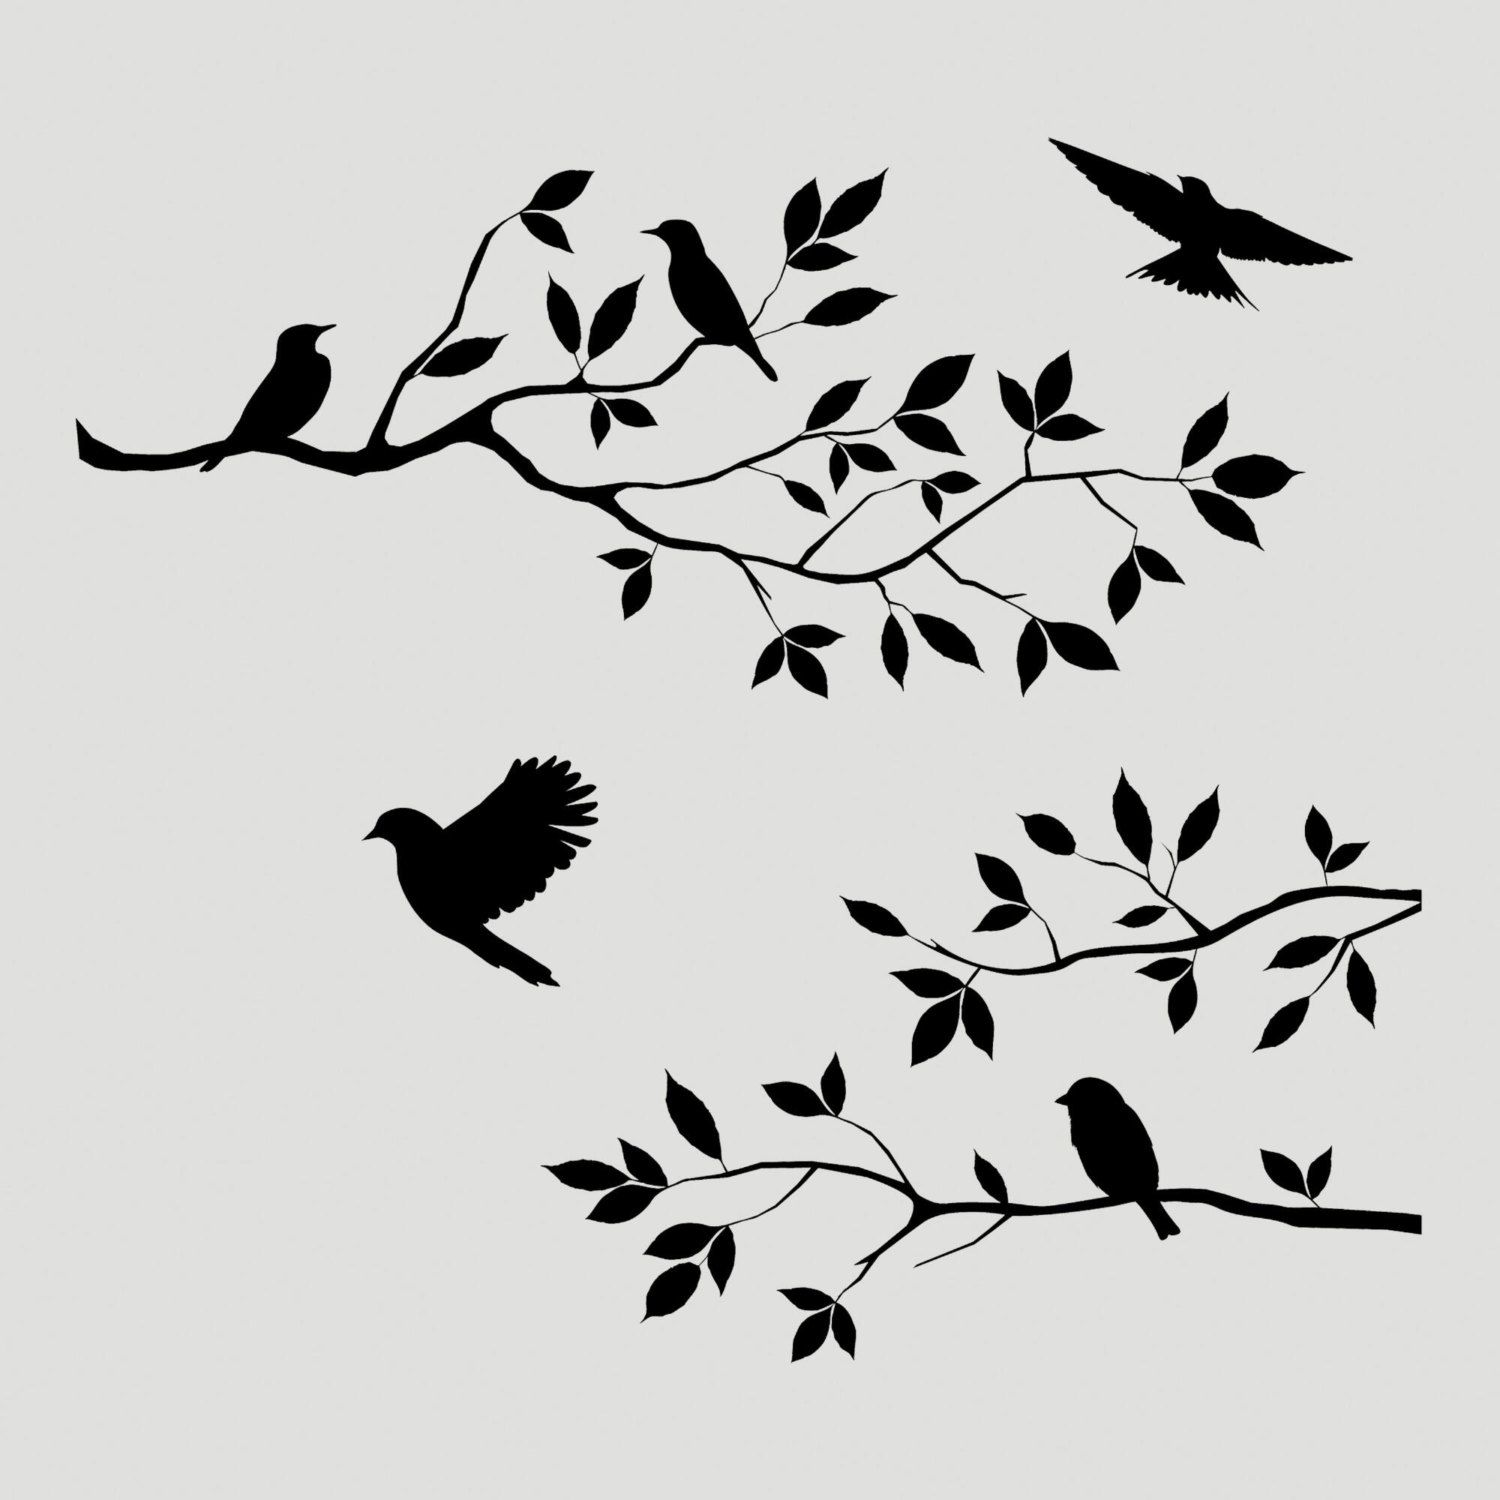 Birds branch tree stencil wall wood sign crafts jennastencils birds branch tree stencil wall wood sign crafts jennastencils paintmask pinned by pin4etsy amipublicfo Images